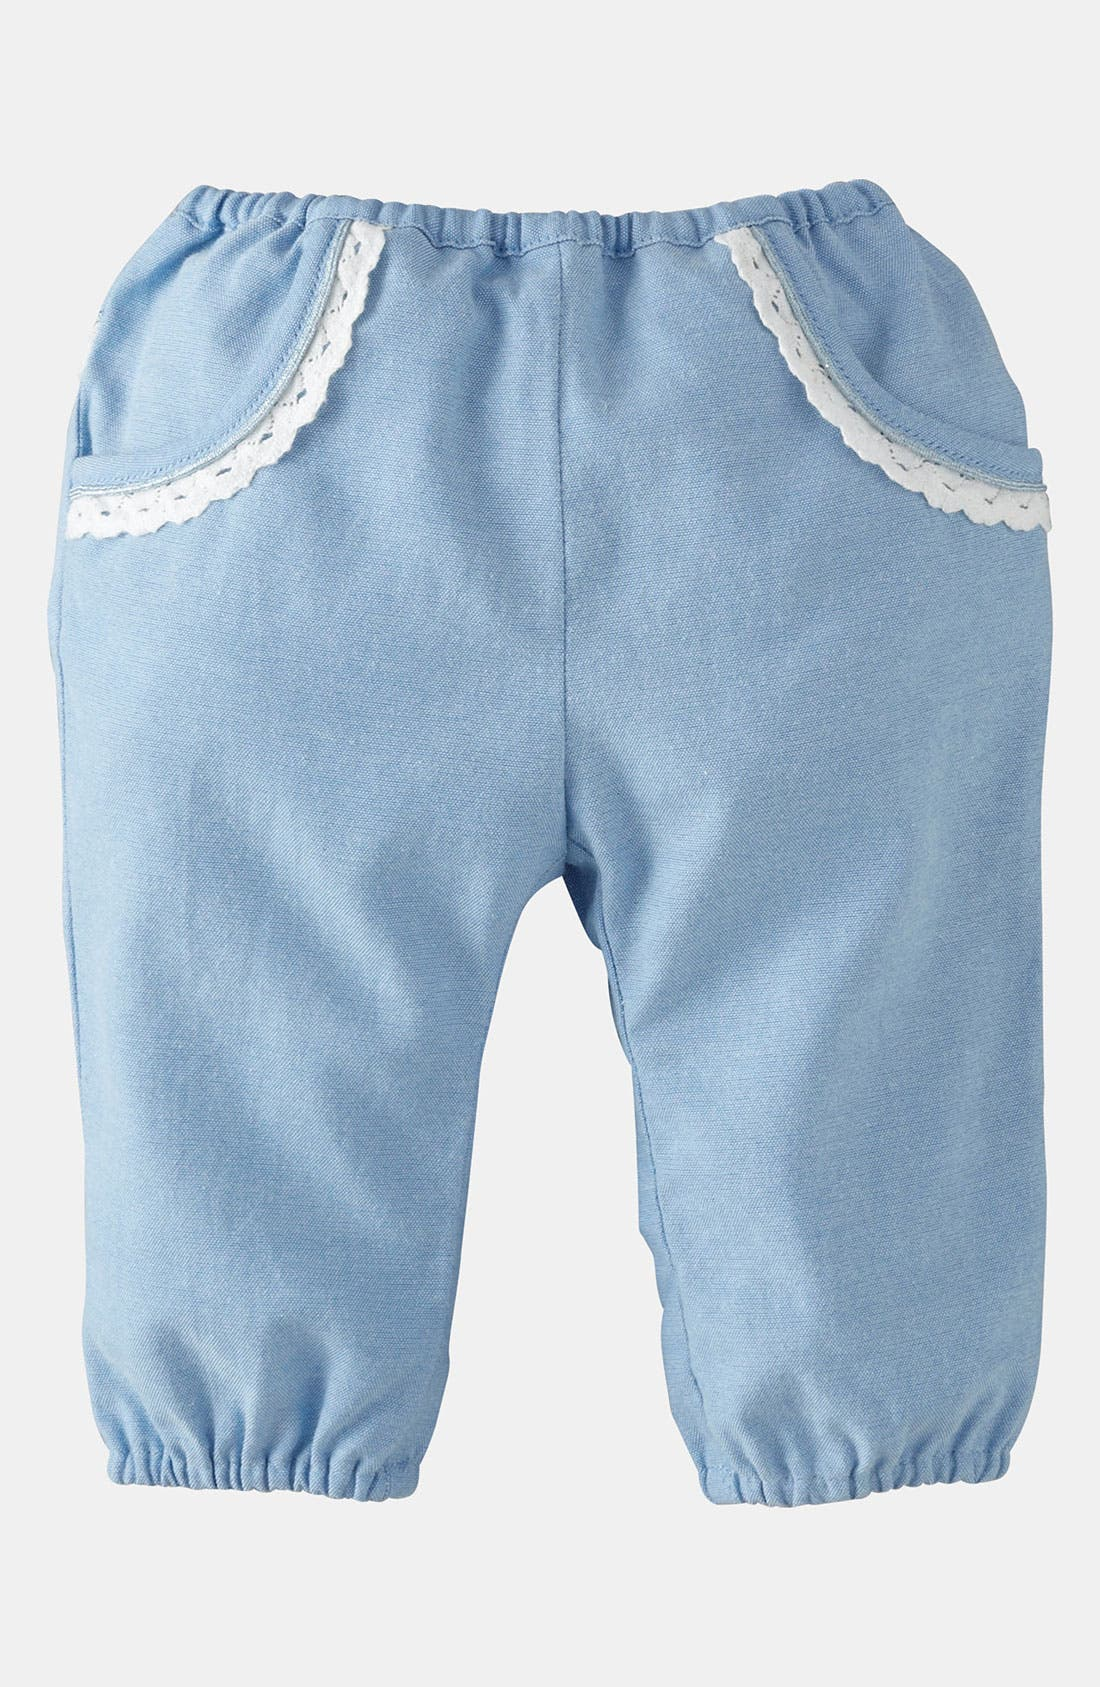 Main Image - Mini Boden 'Pretty' Pants (Baby)